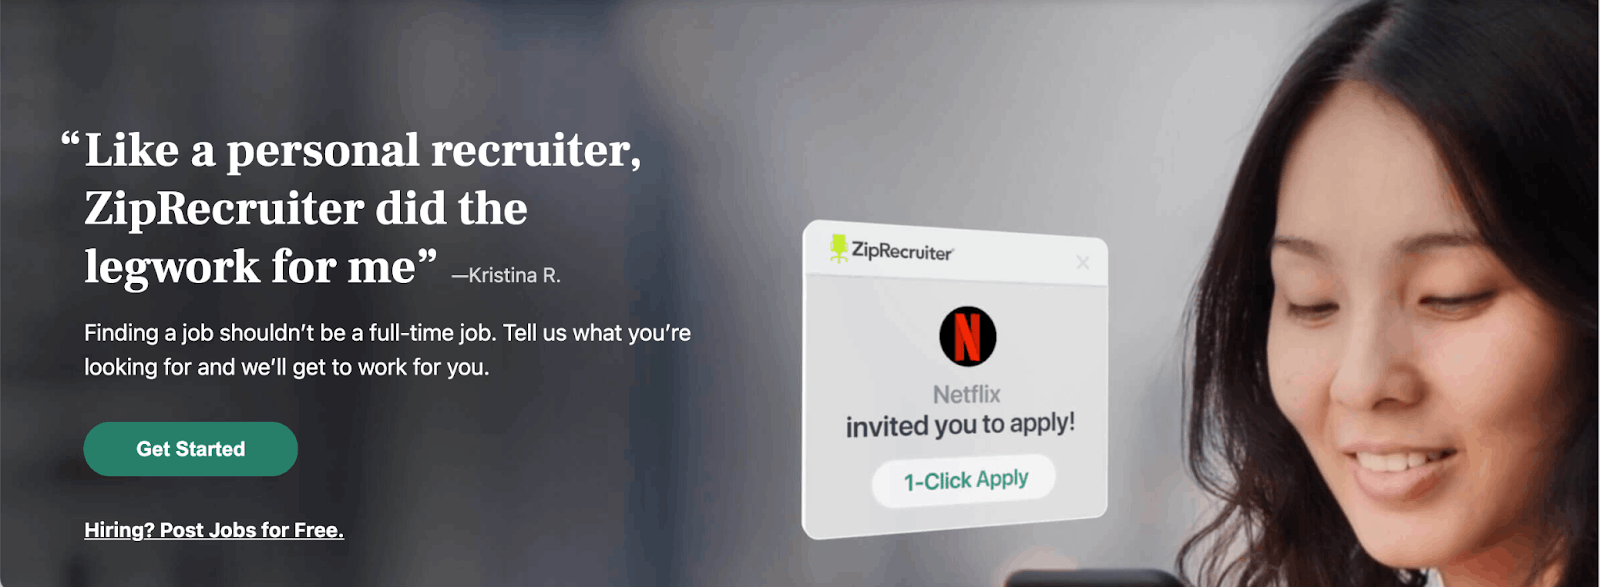 Zip Recruiter - Learn How to Find a Job